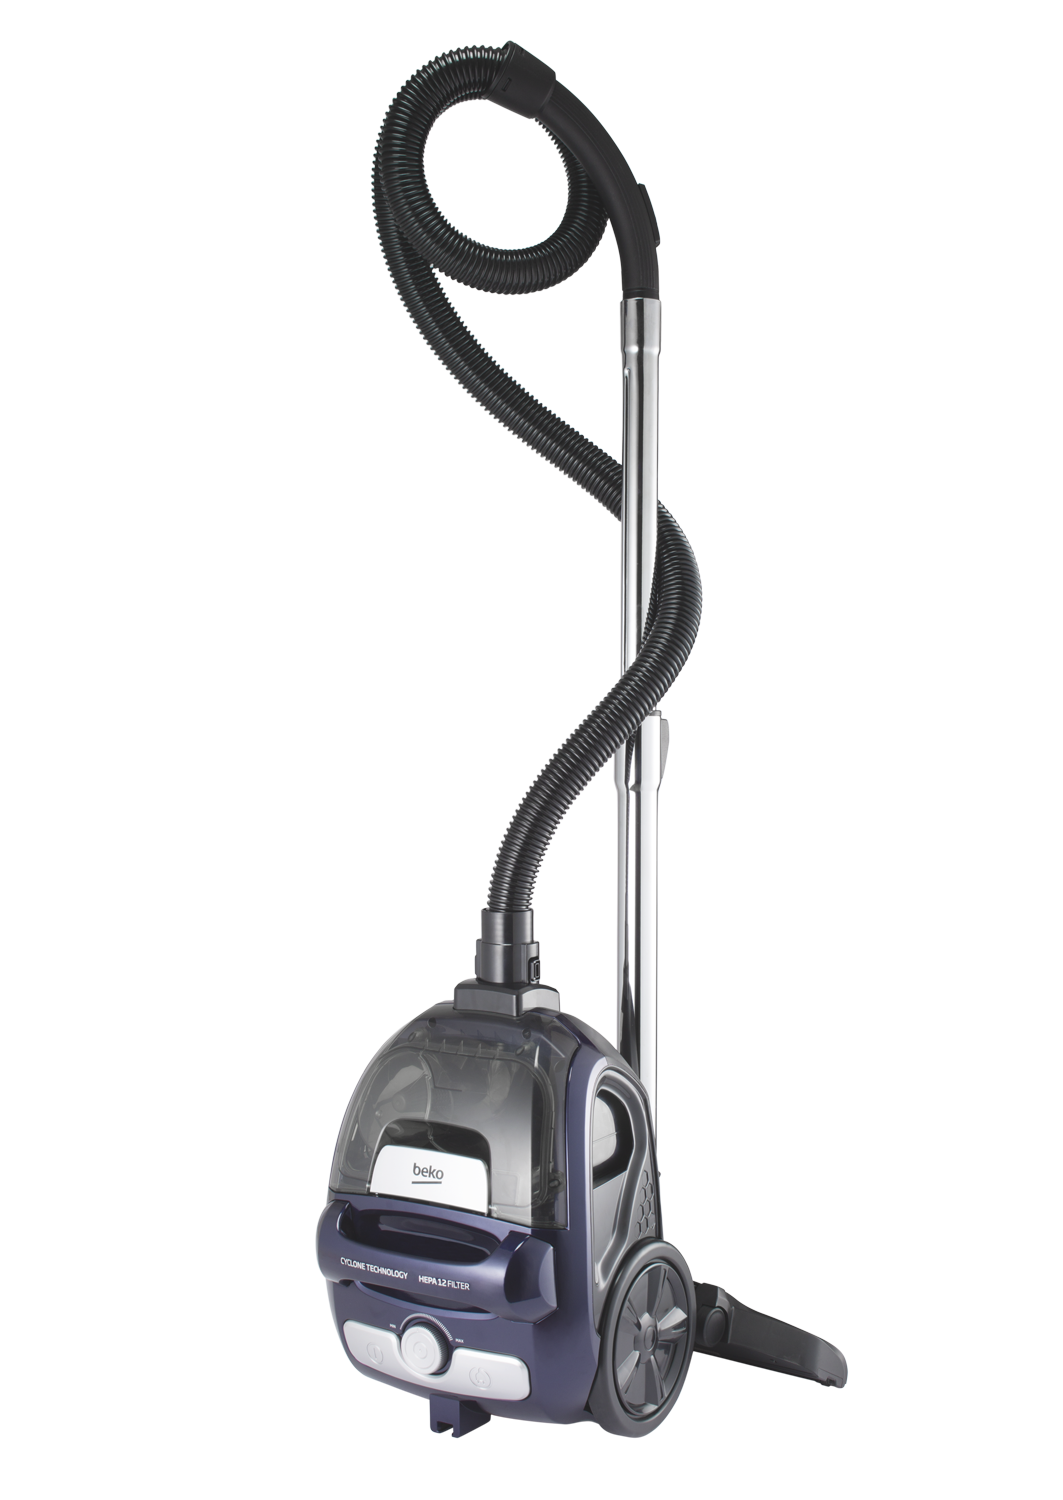 Bagless Canister Vacuum Cleaner (1800 W) VCO 4320 WR